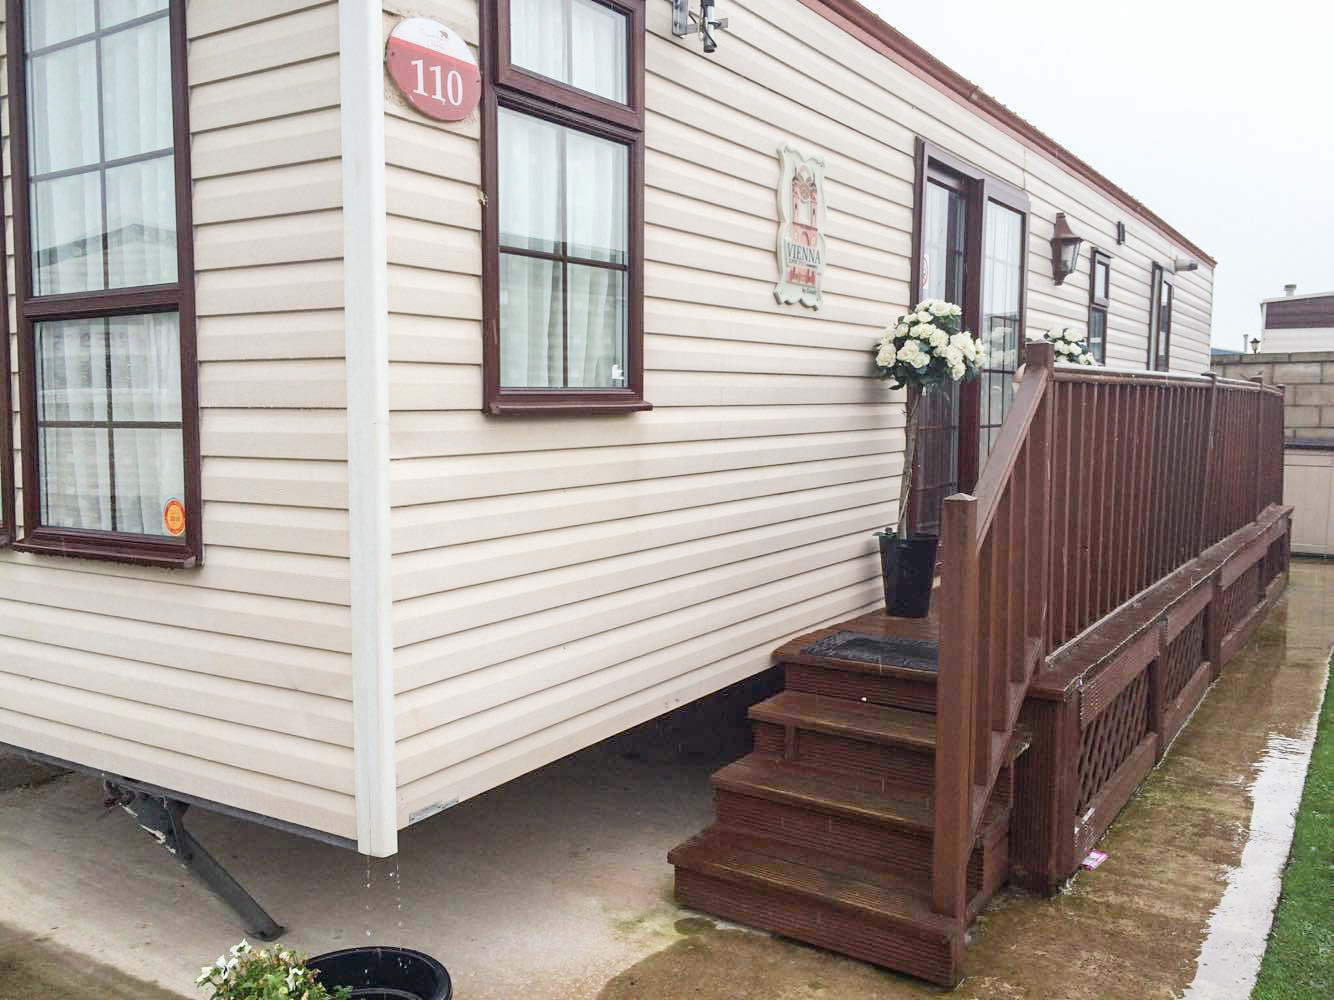 *101* Sandy Bay Caravan Park,Towyn,North Wales